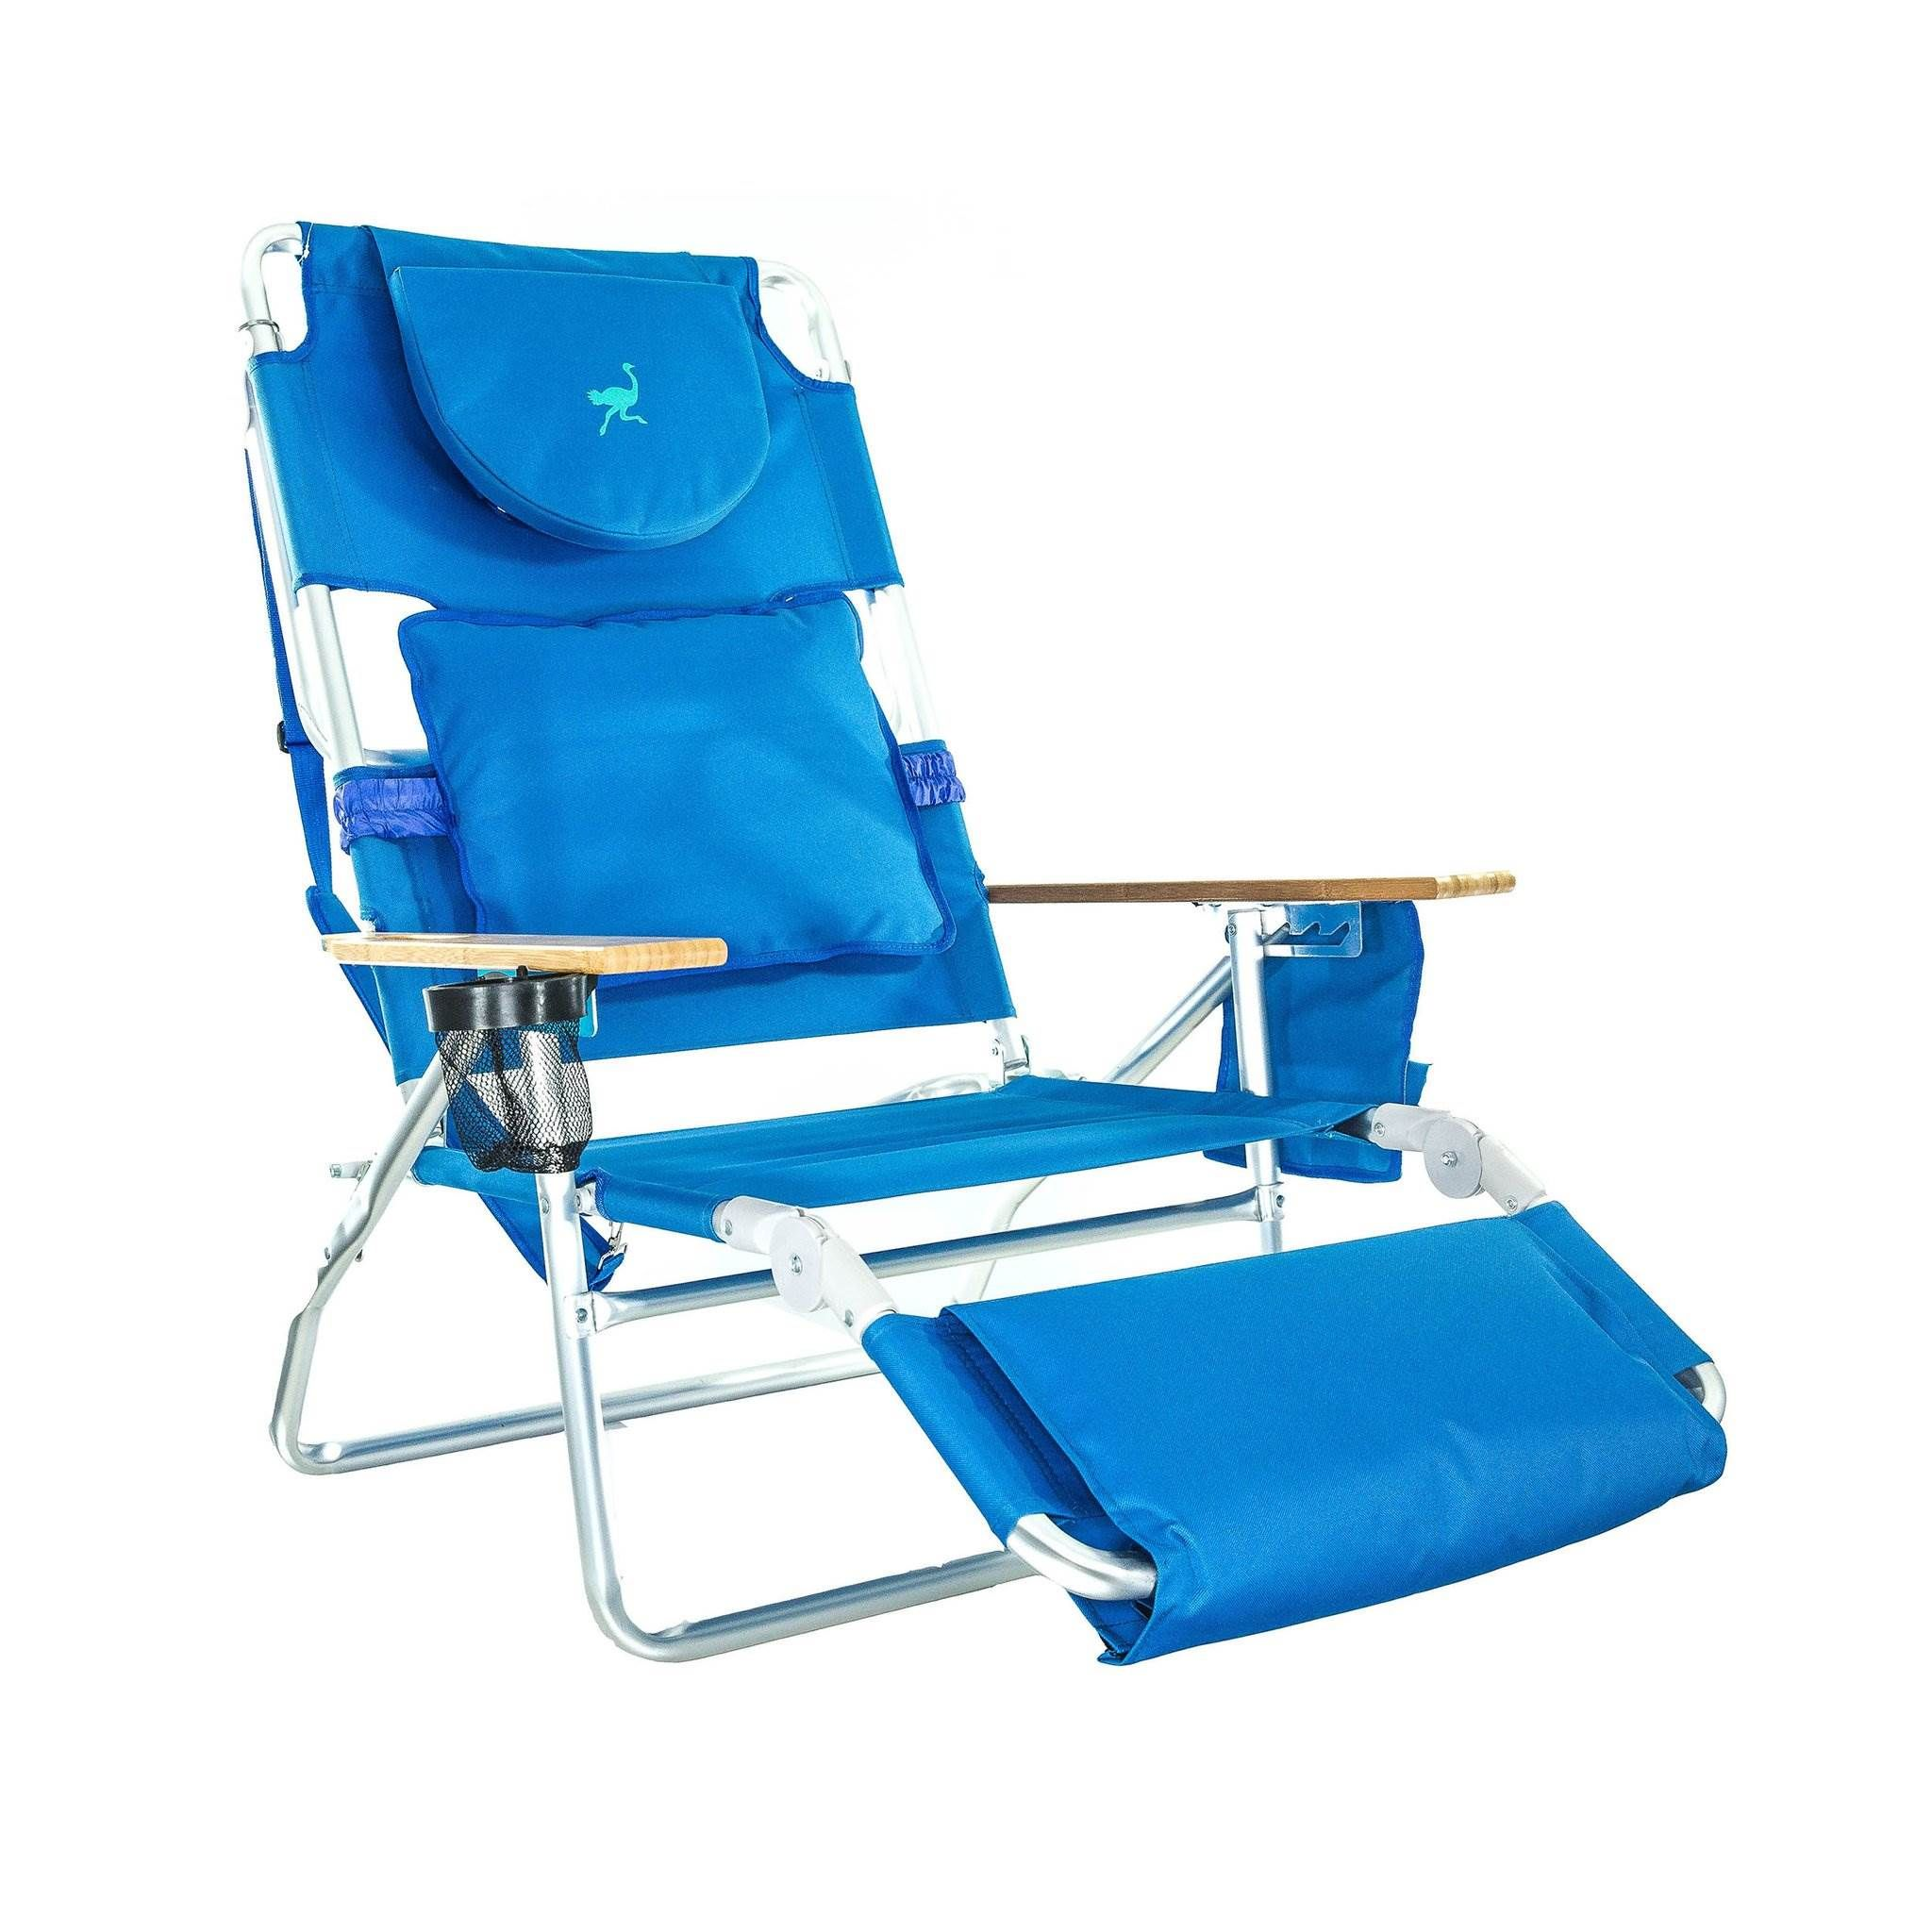 Ostrich Deluxe Padded 3N1 Outdoor Lounge Reclining Beach